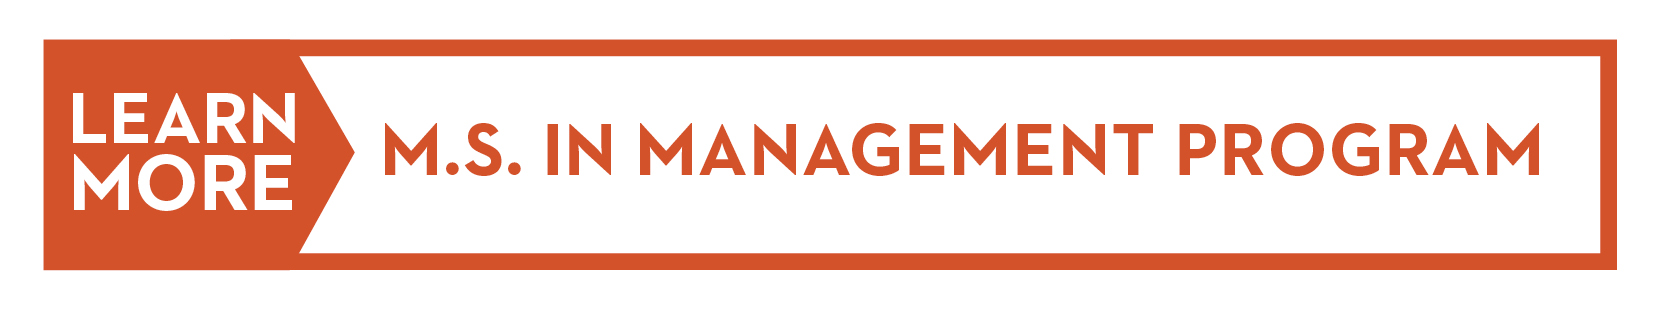 Learn More_M.S. in Management